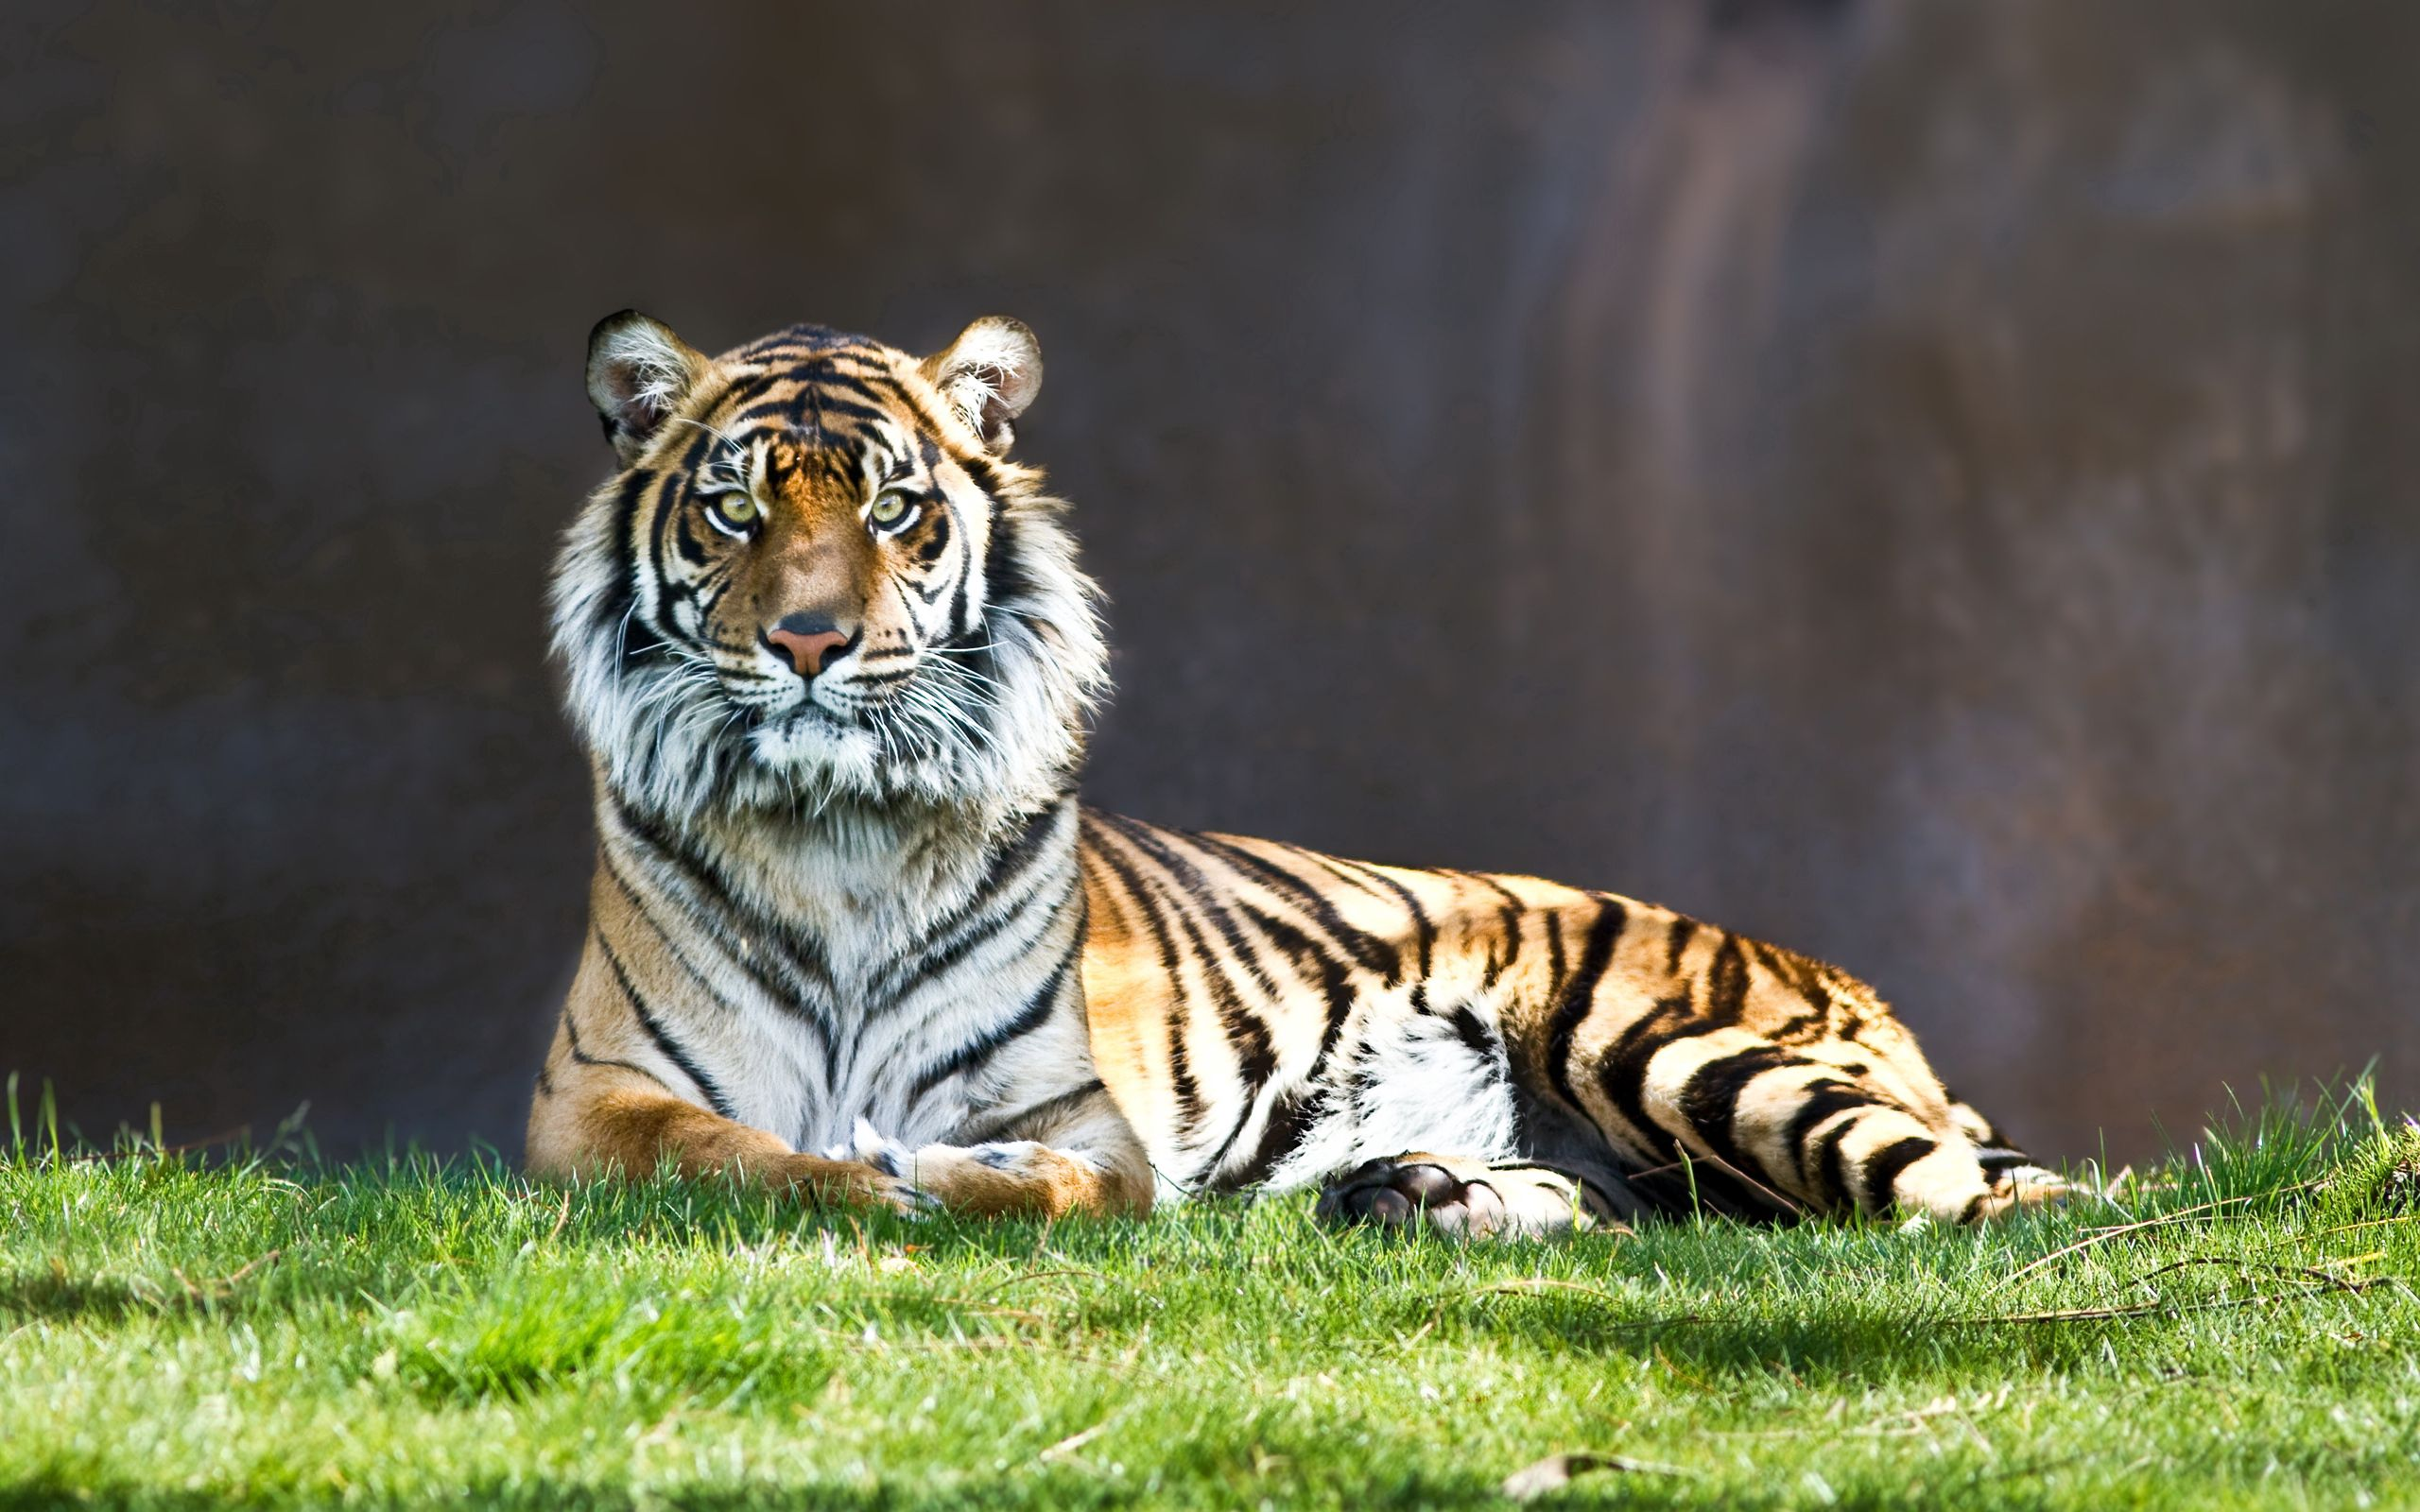 154515 download wallpaper Animals, Tiger, Predator, Big Cat, To Lie Down, Lie, Grass screensavers and pictures for free